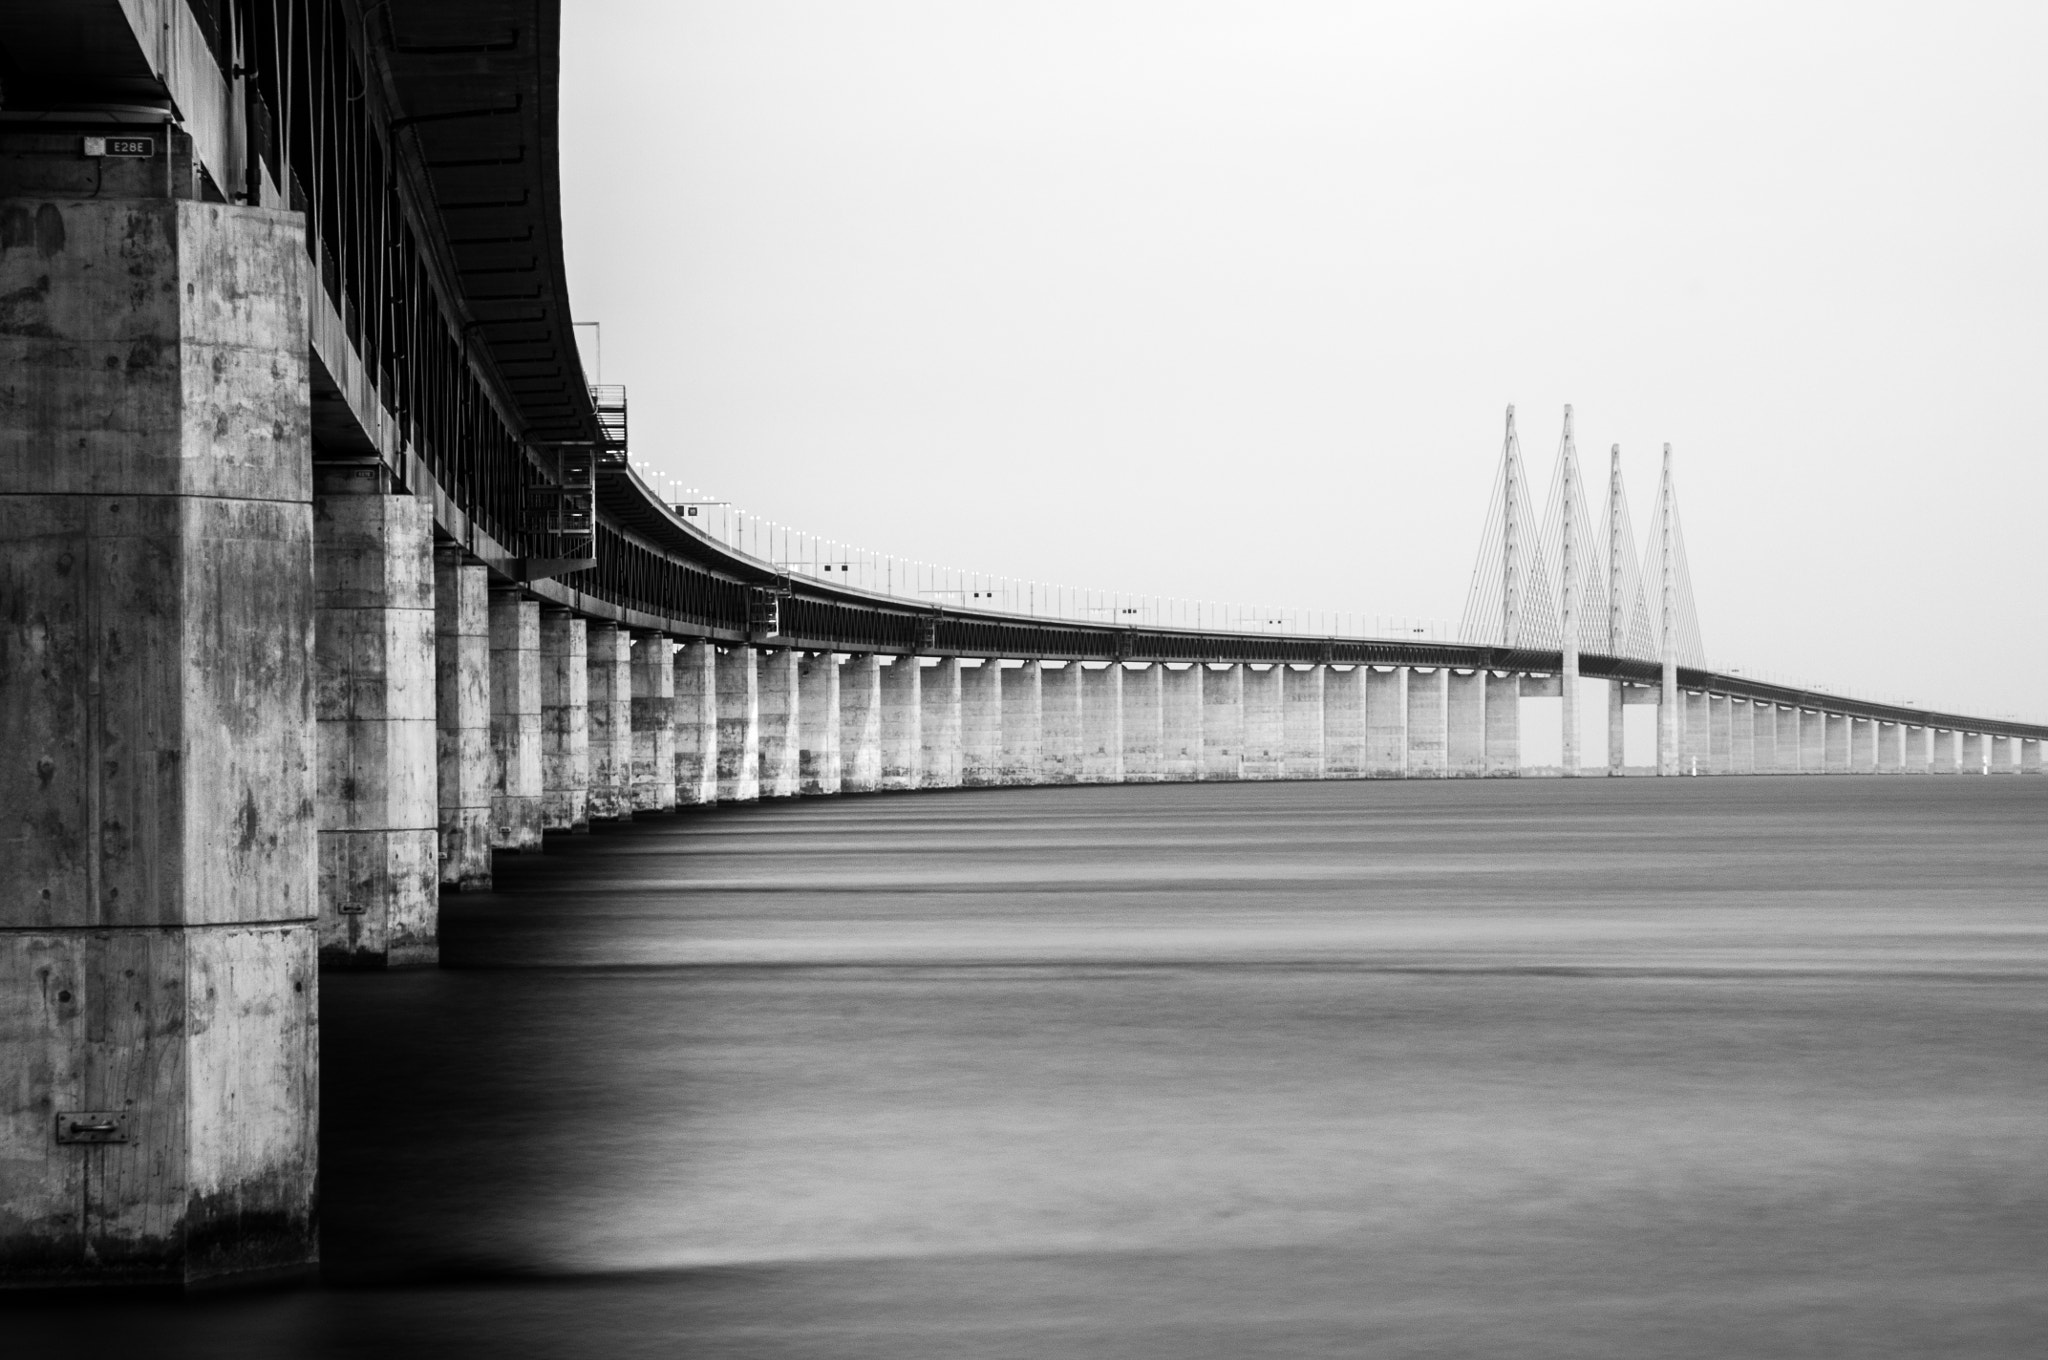 Photograph Öresund by Christoffer Gebel on 500px